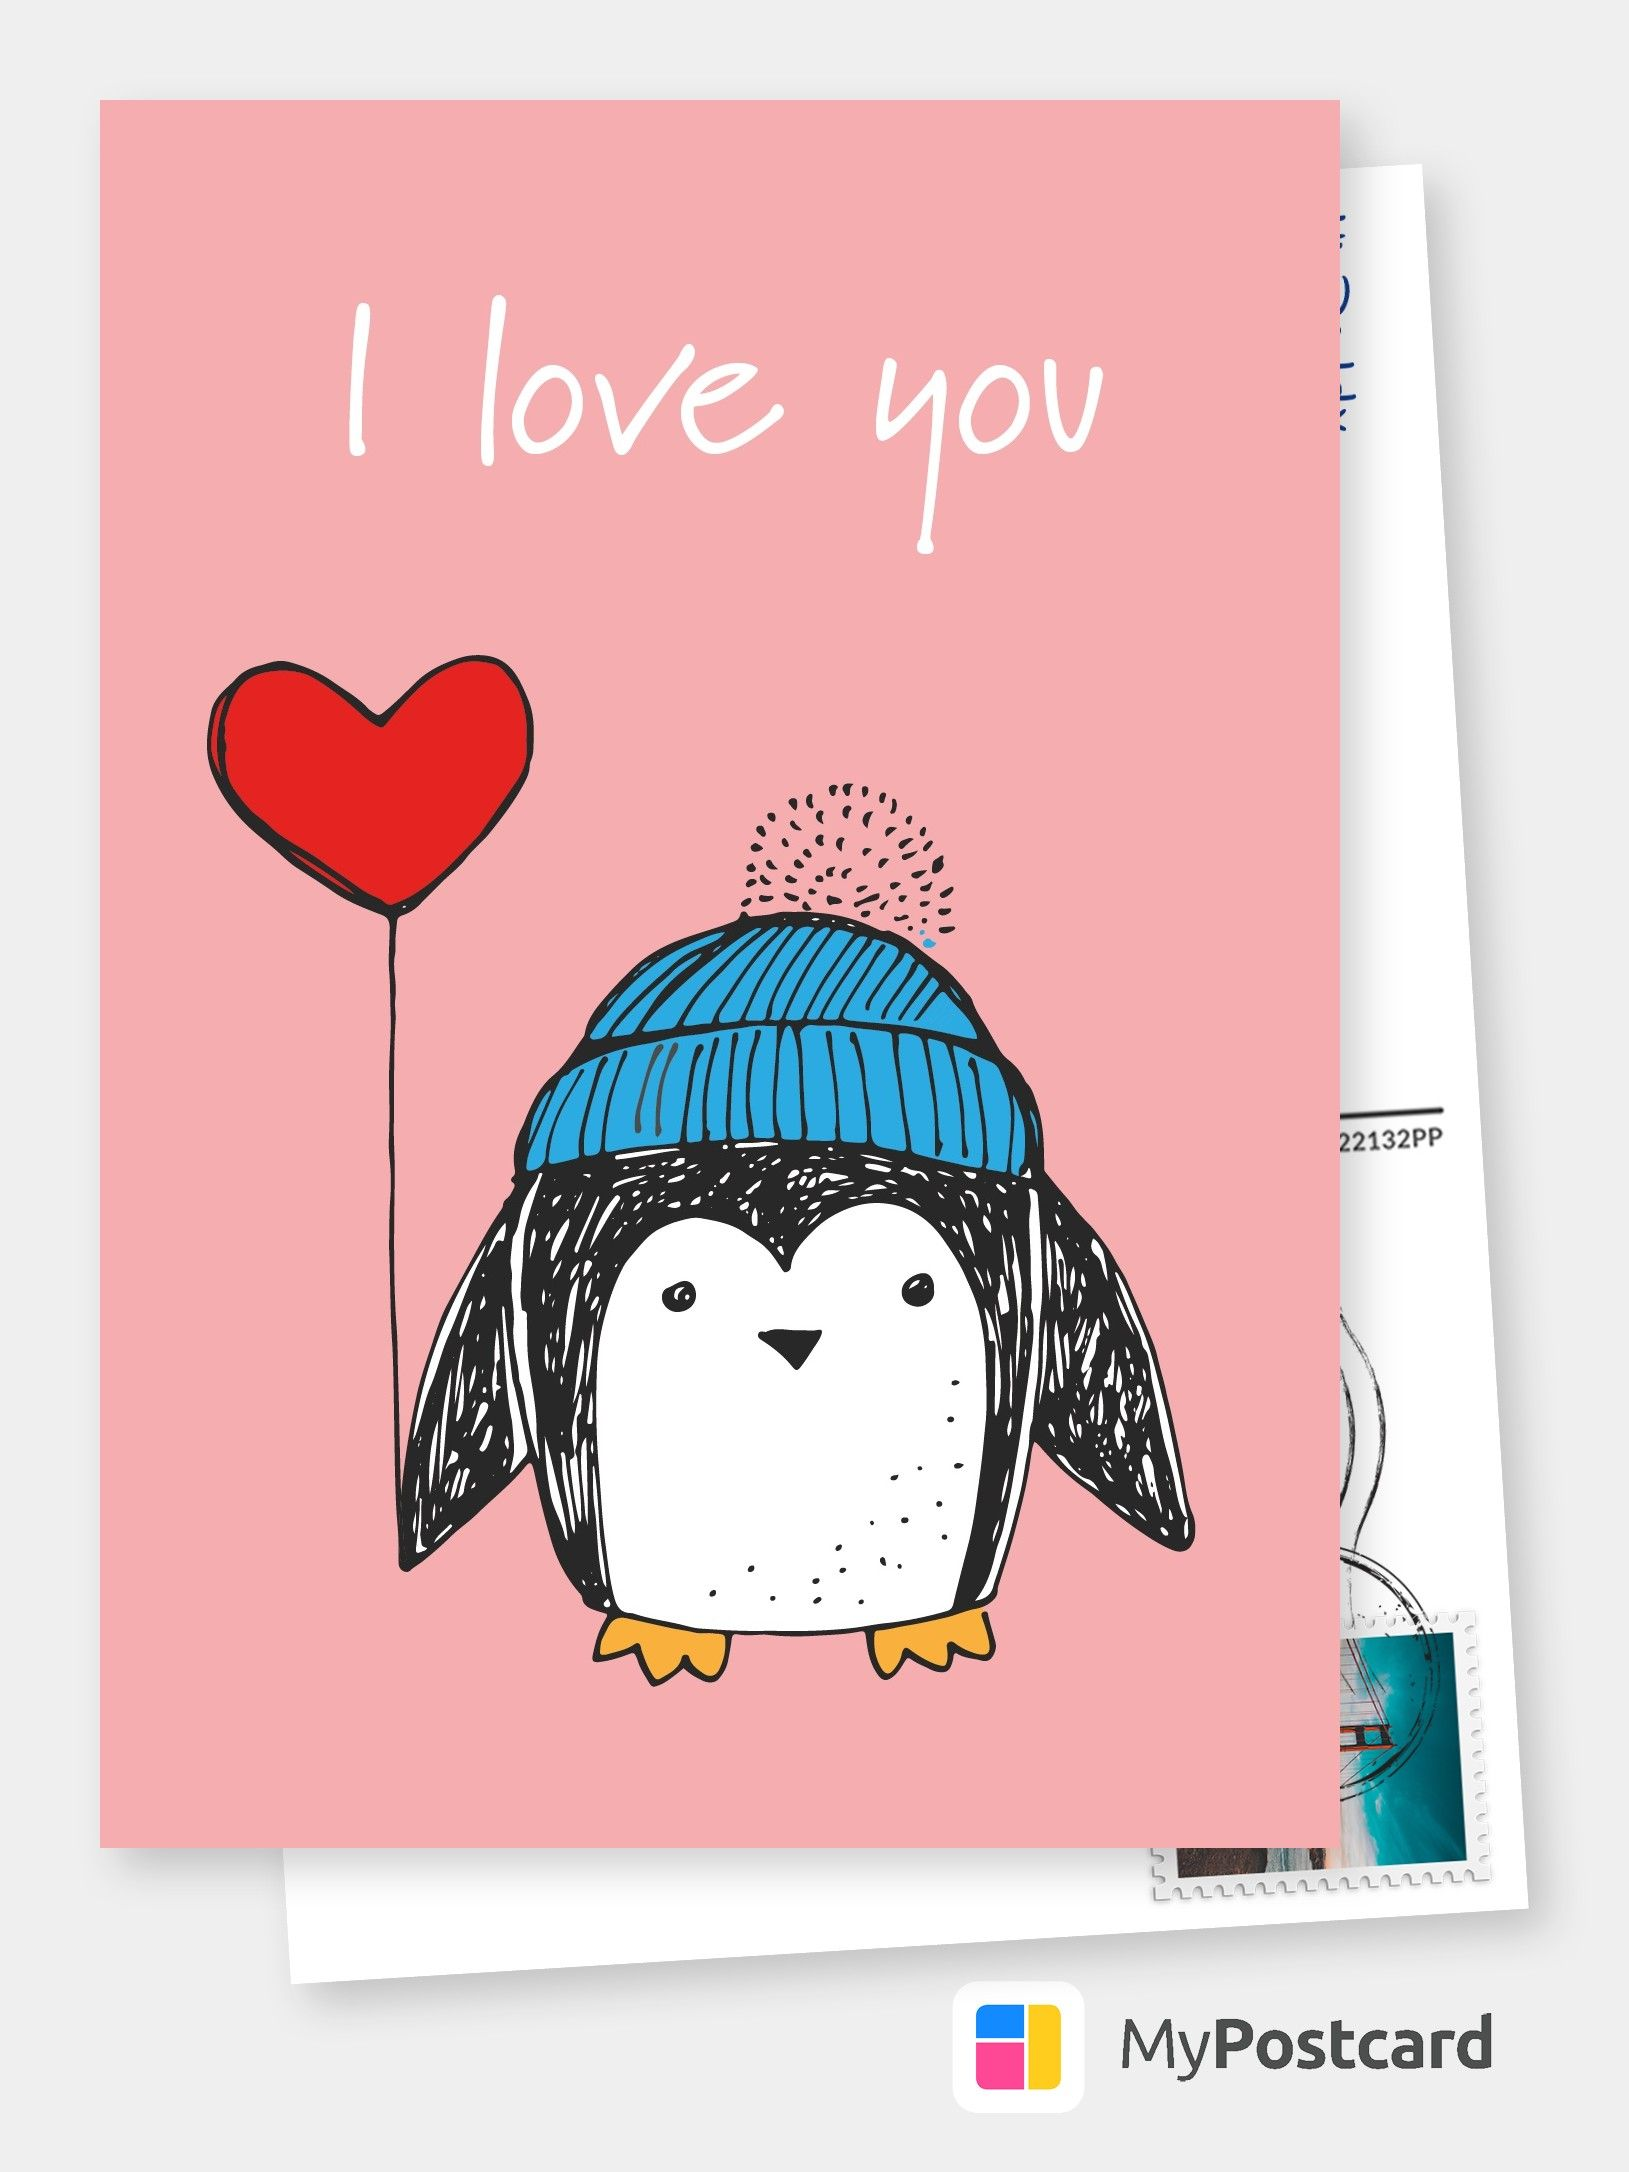 Personalized Free I Love You Cards Templates Printable And Mailed For You International Free Shipping Worldwide Postcard Service Or Postcards App Postcard App Postcard Cards For Boyfriend